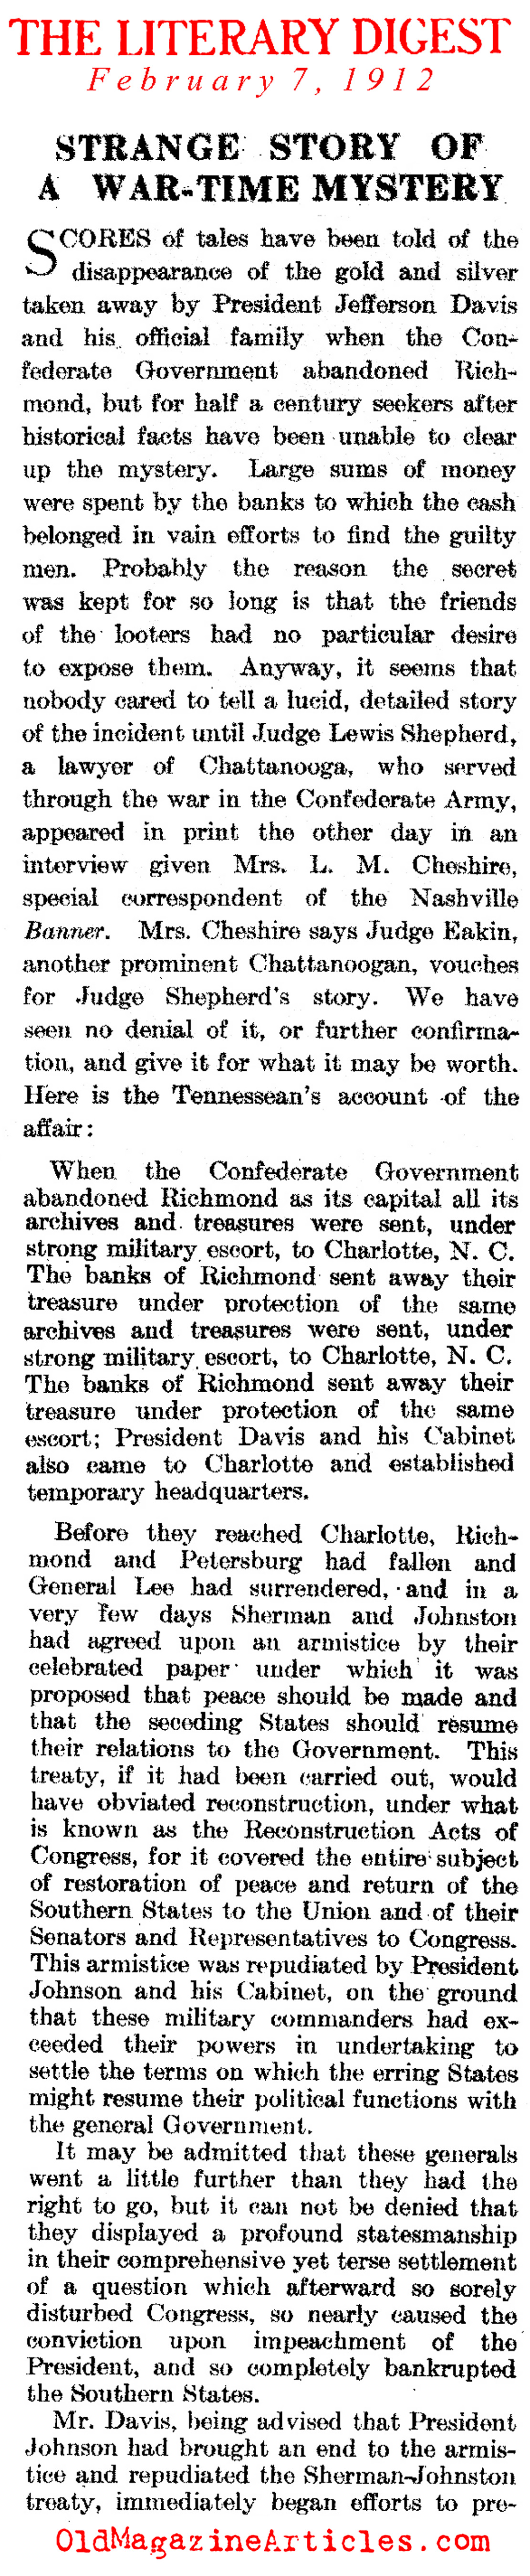 The Missing Confederate Gold (Literary Digest, 1912)